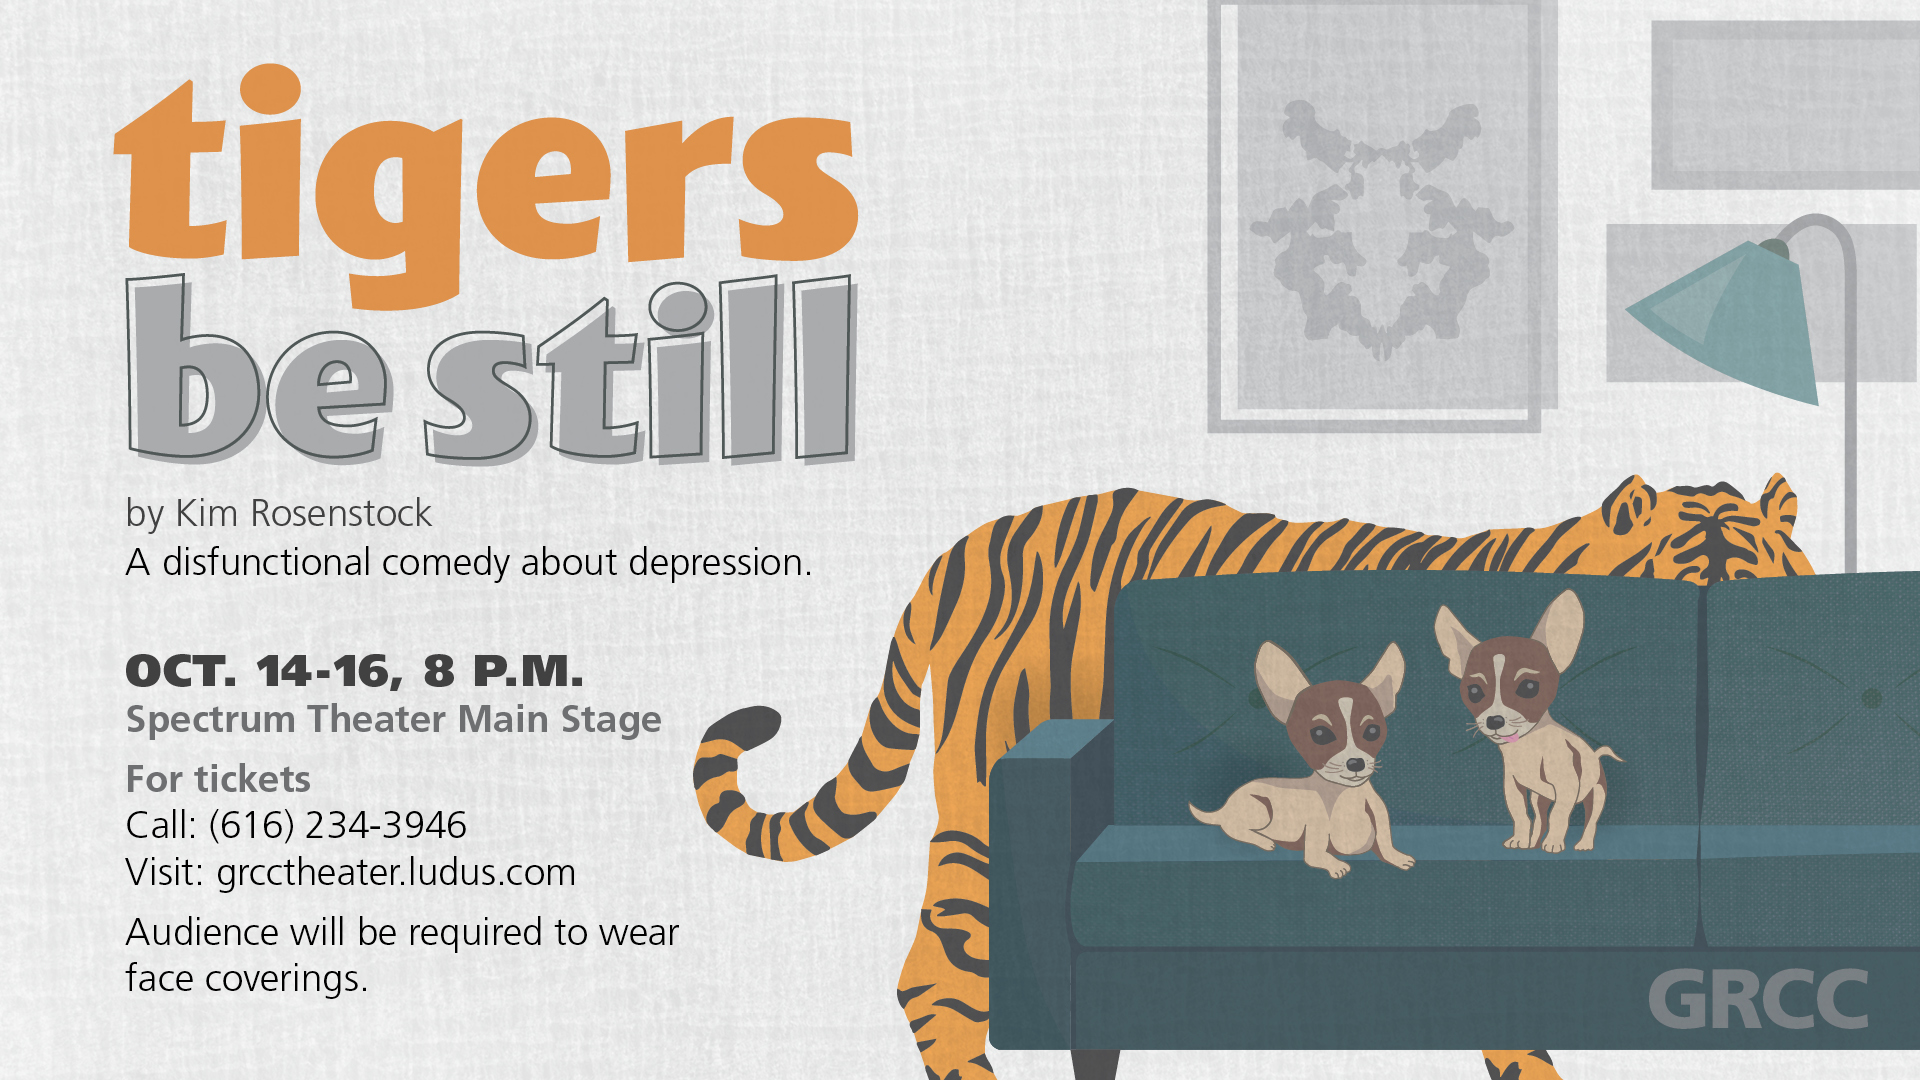 Tigers Be Still by Kim Rosenstock. A dysfunctional comedy about depression. Oct. 14-16, 8 p.m. Spectrum Theater Main Stage. For tickets. Call: (616) 234-3946 Visit: grcctheater.ludus.com Audience will be required to wear face coverings. GRCC